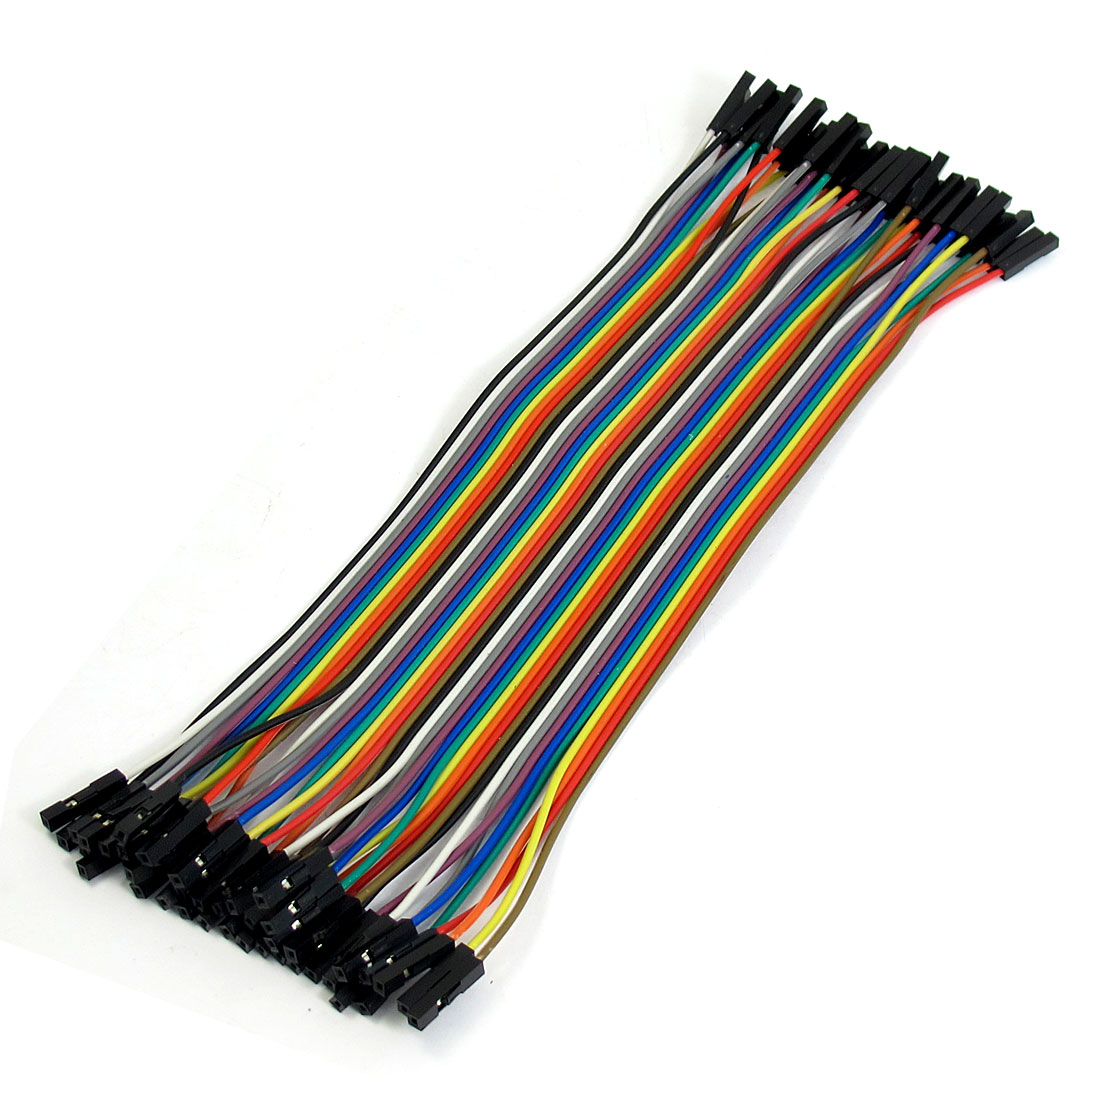 Unique Bargains 40 PCS 20CM Female to Female 1 Pin Plug Jumper Cable Wire for